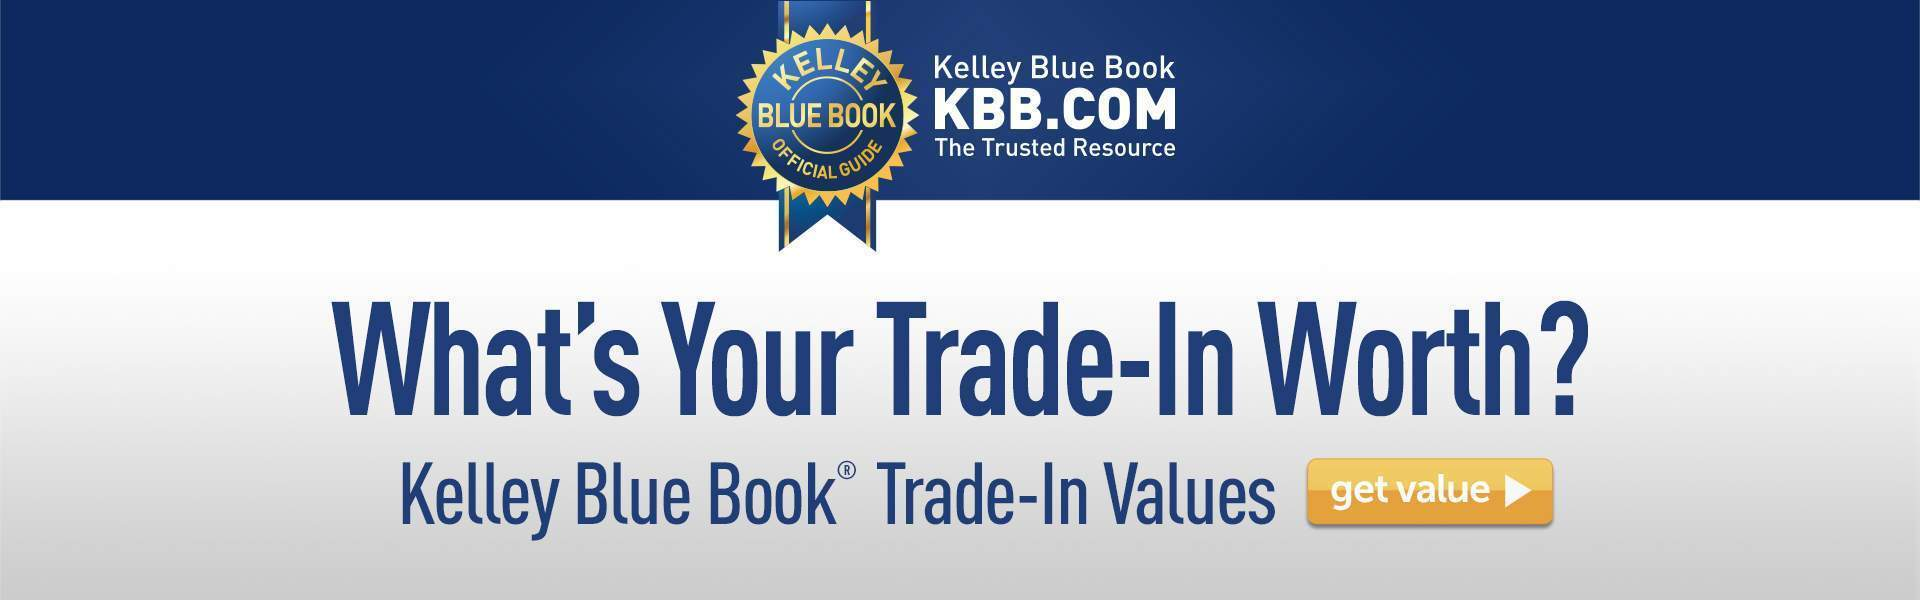 KBB What's Your Trade Worth